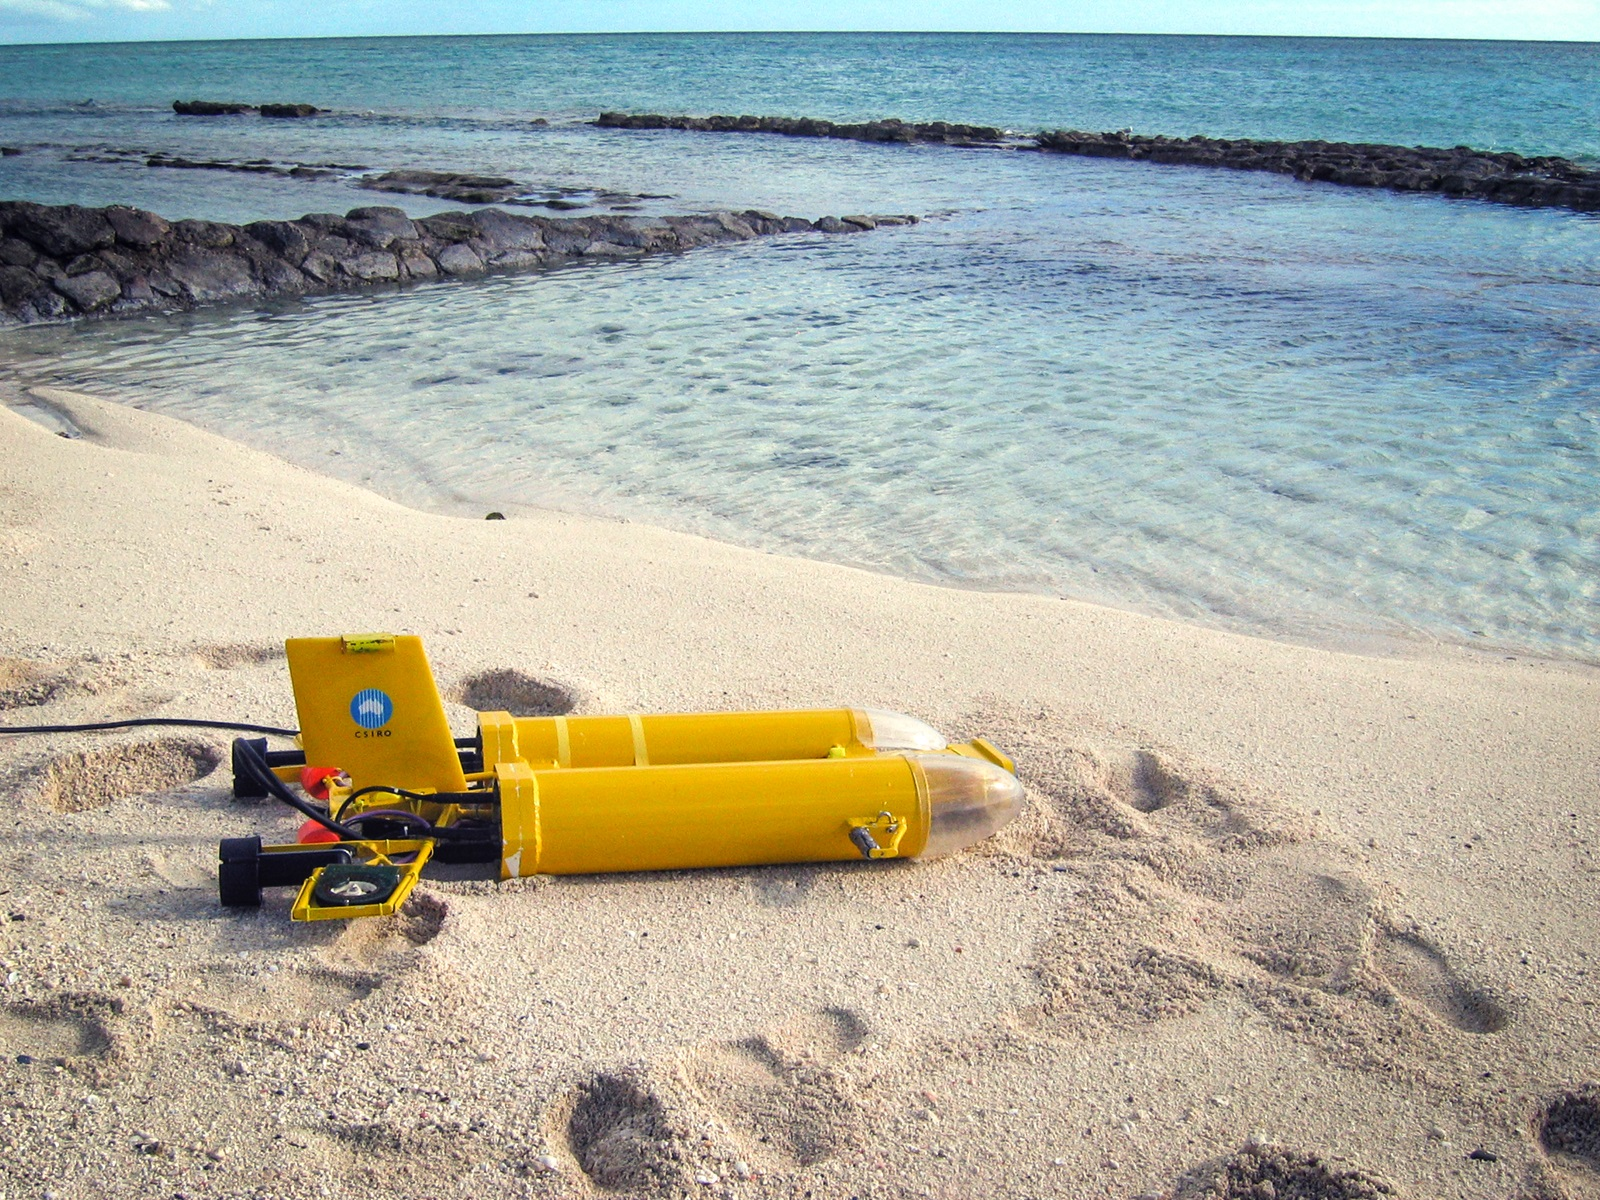 Yellow twin hull autonomous submarine sitting on beach near clear blue water